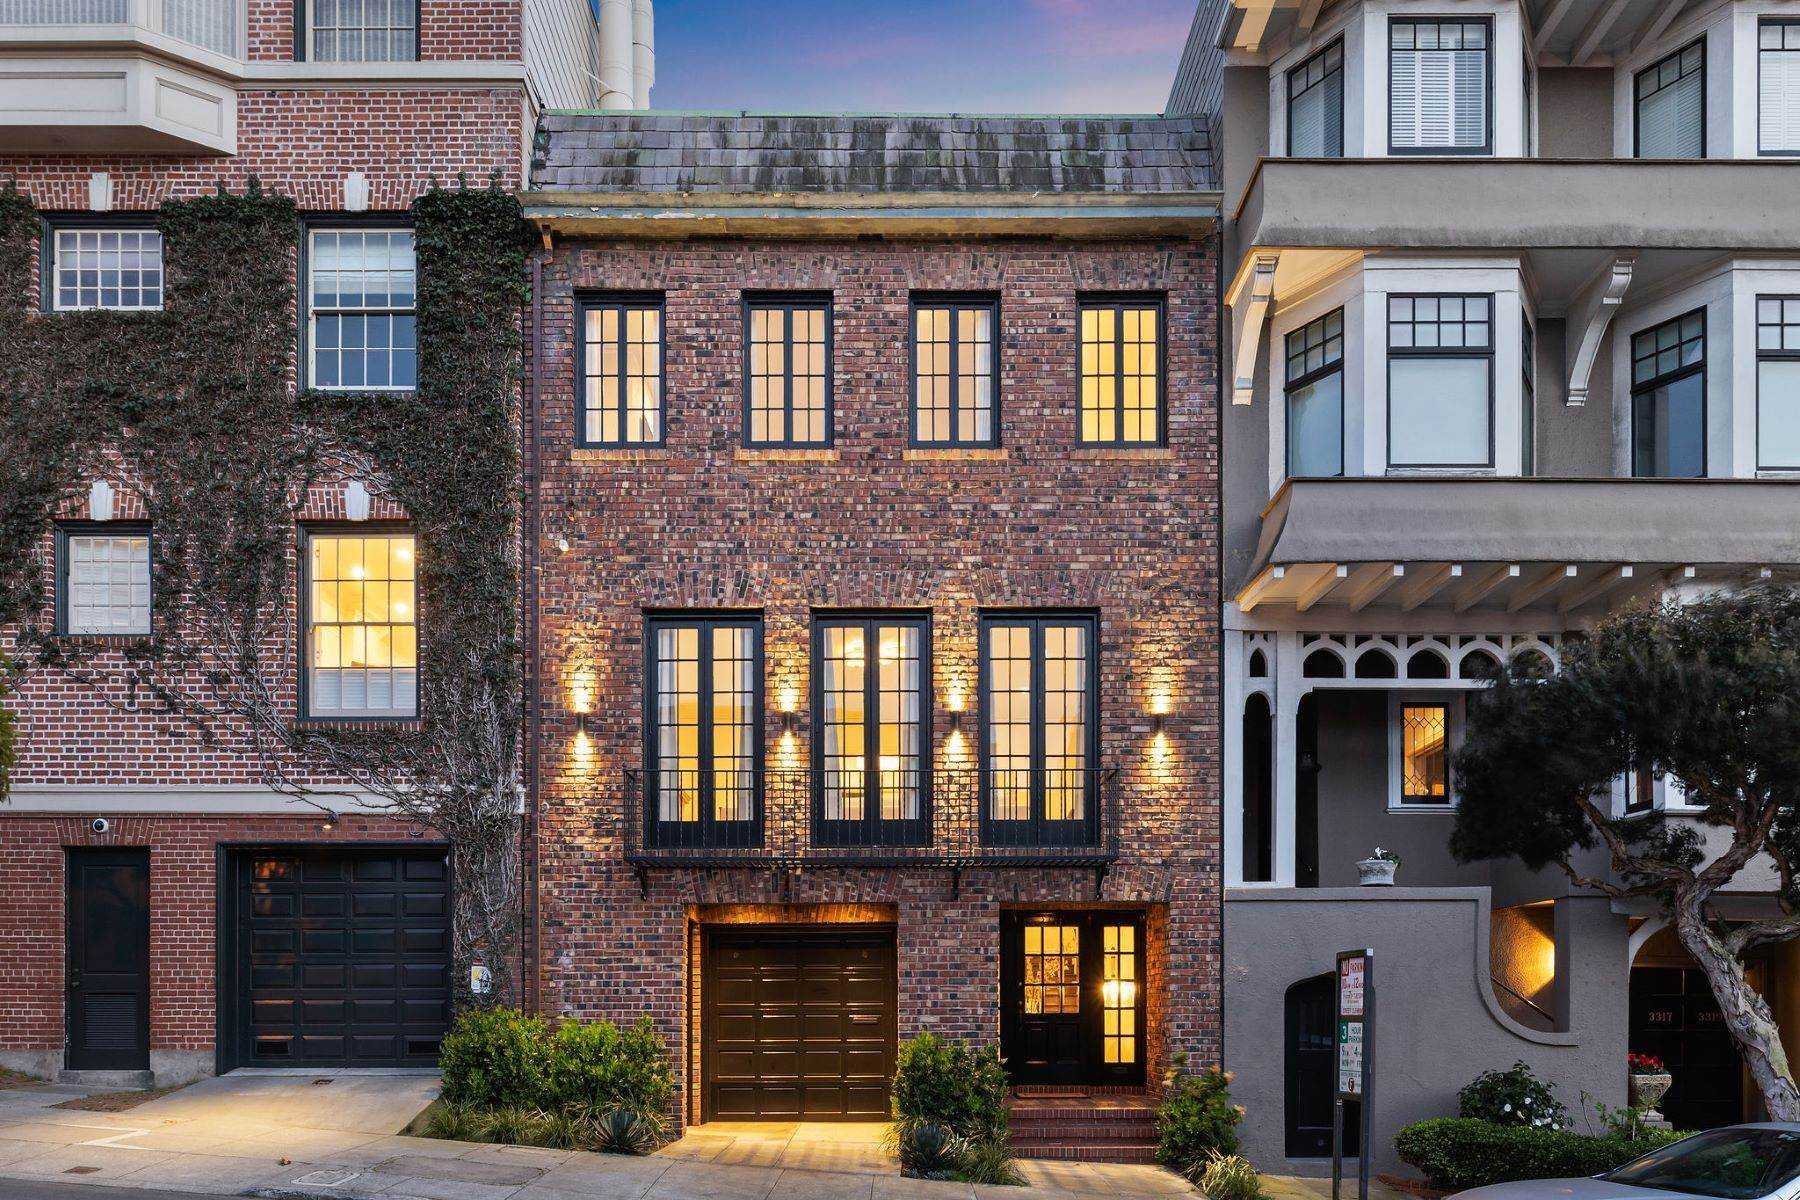 Single Family Homes for Sale at Exceptional Presidio Heights Home 3311 Jackson Street San Francisco, California 94118 United States